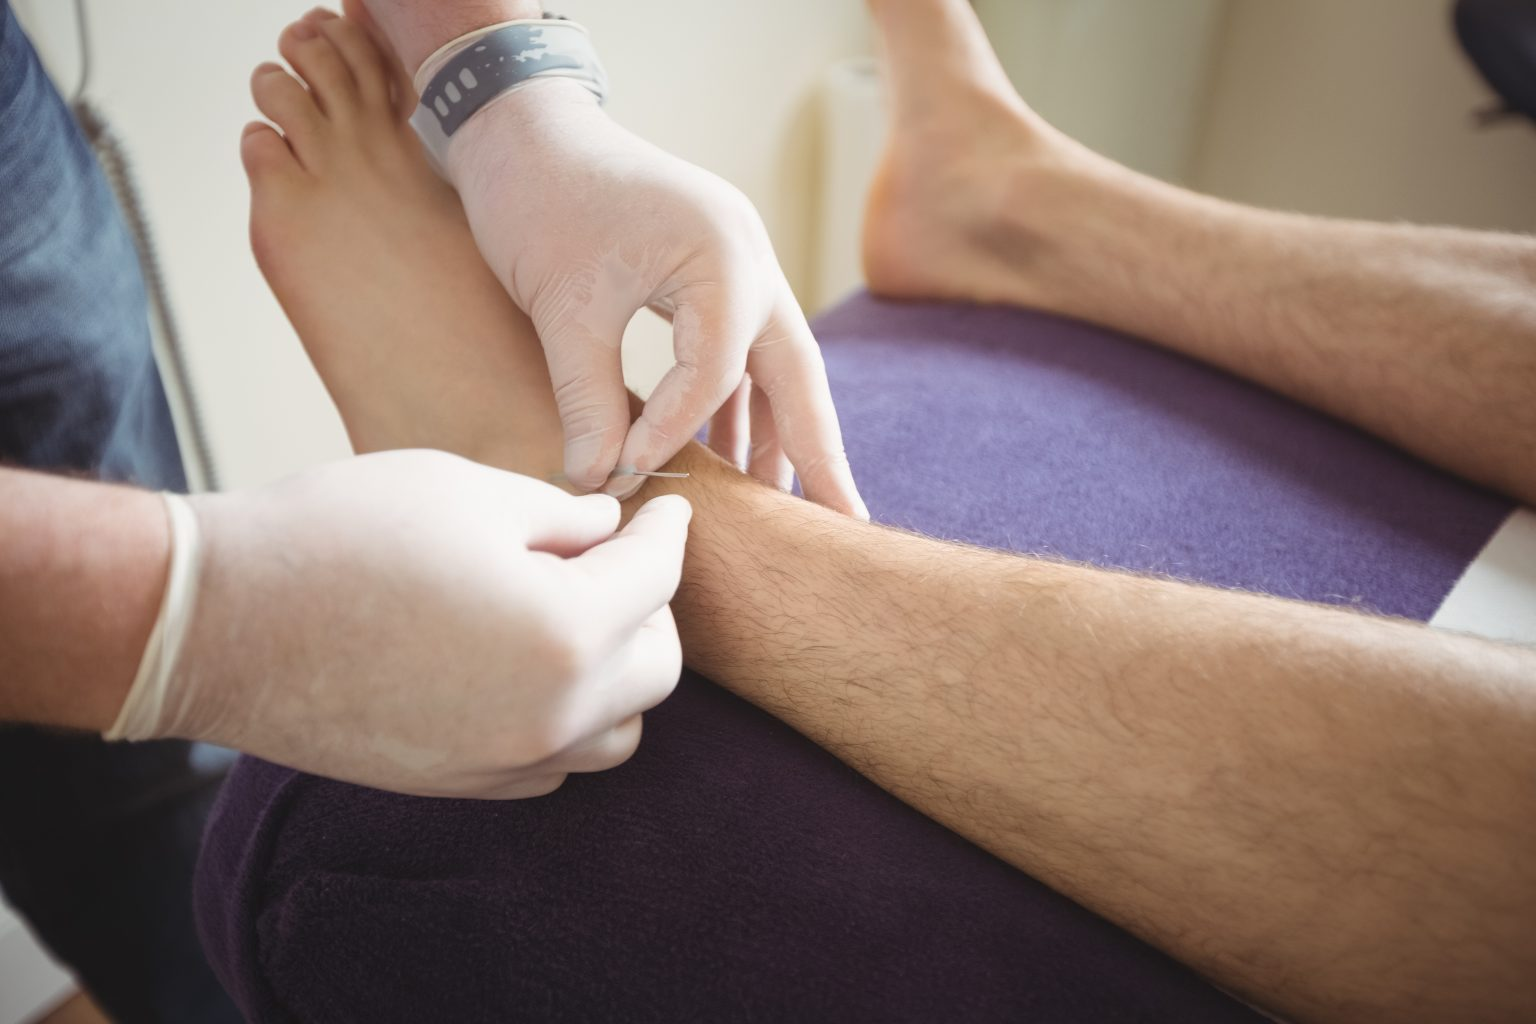 acupuncture needle apllication on ankle